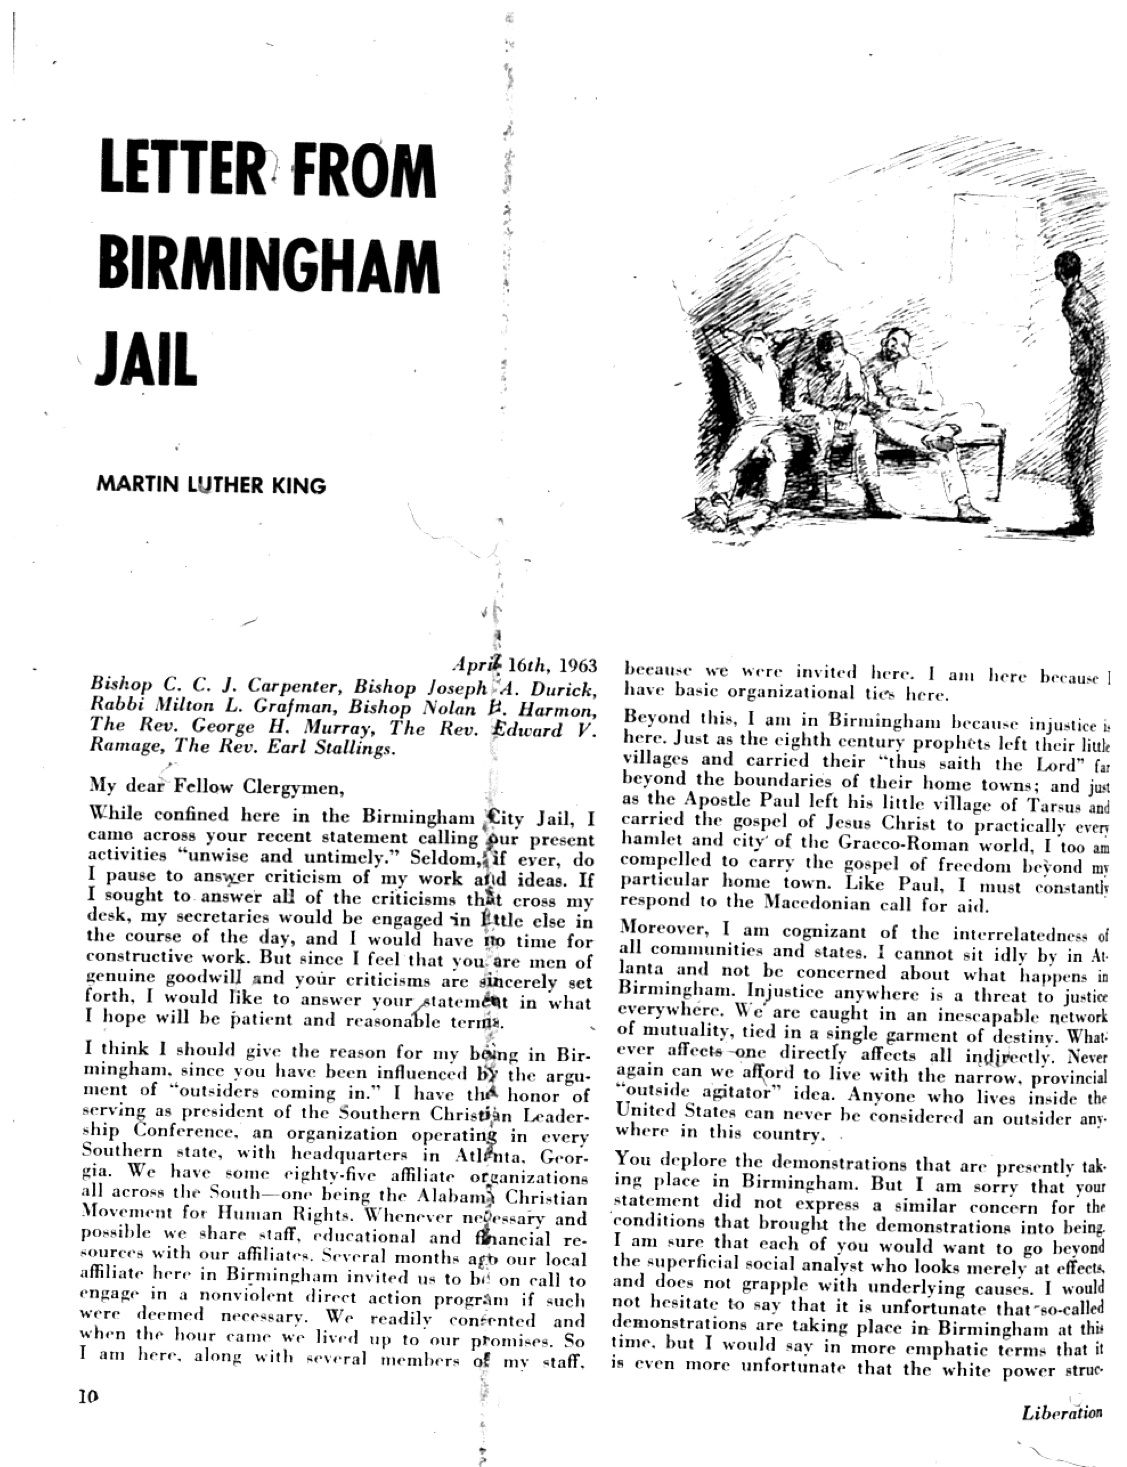 martin luther king letter from birmingham jail google search